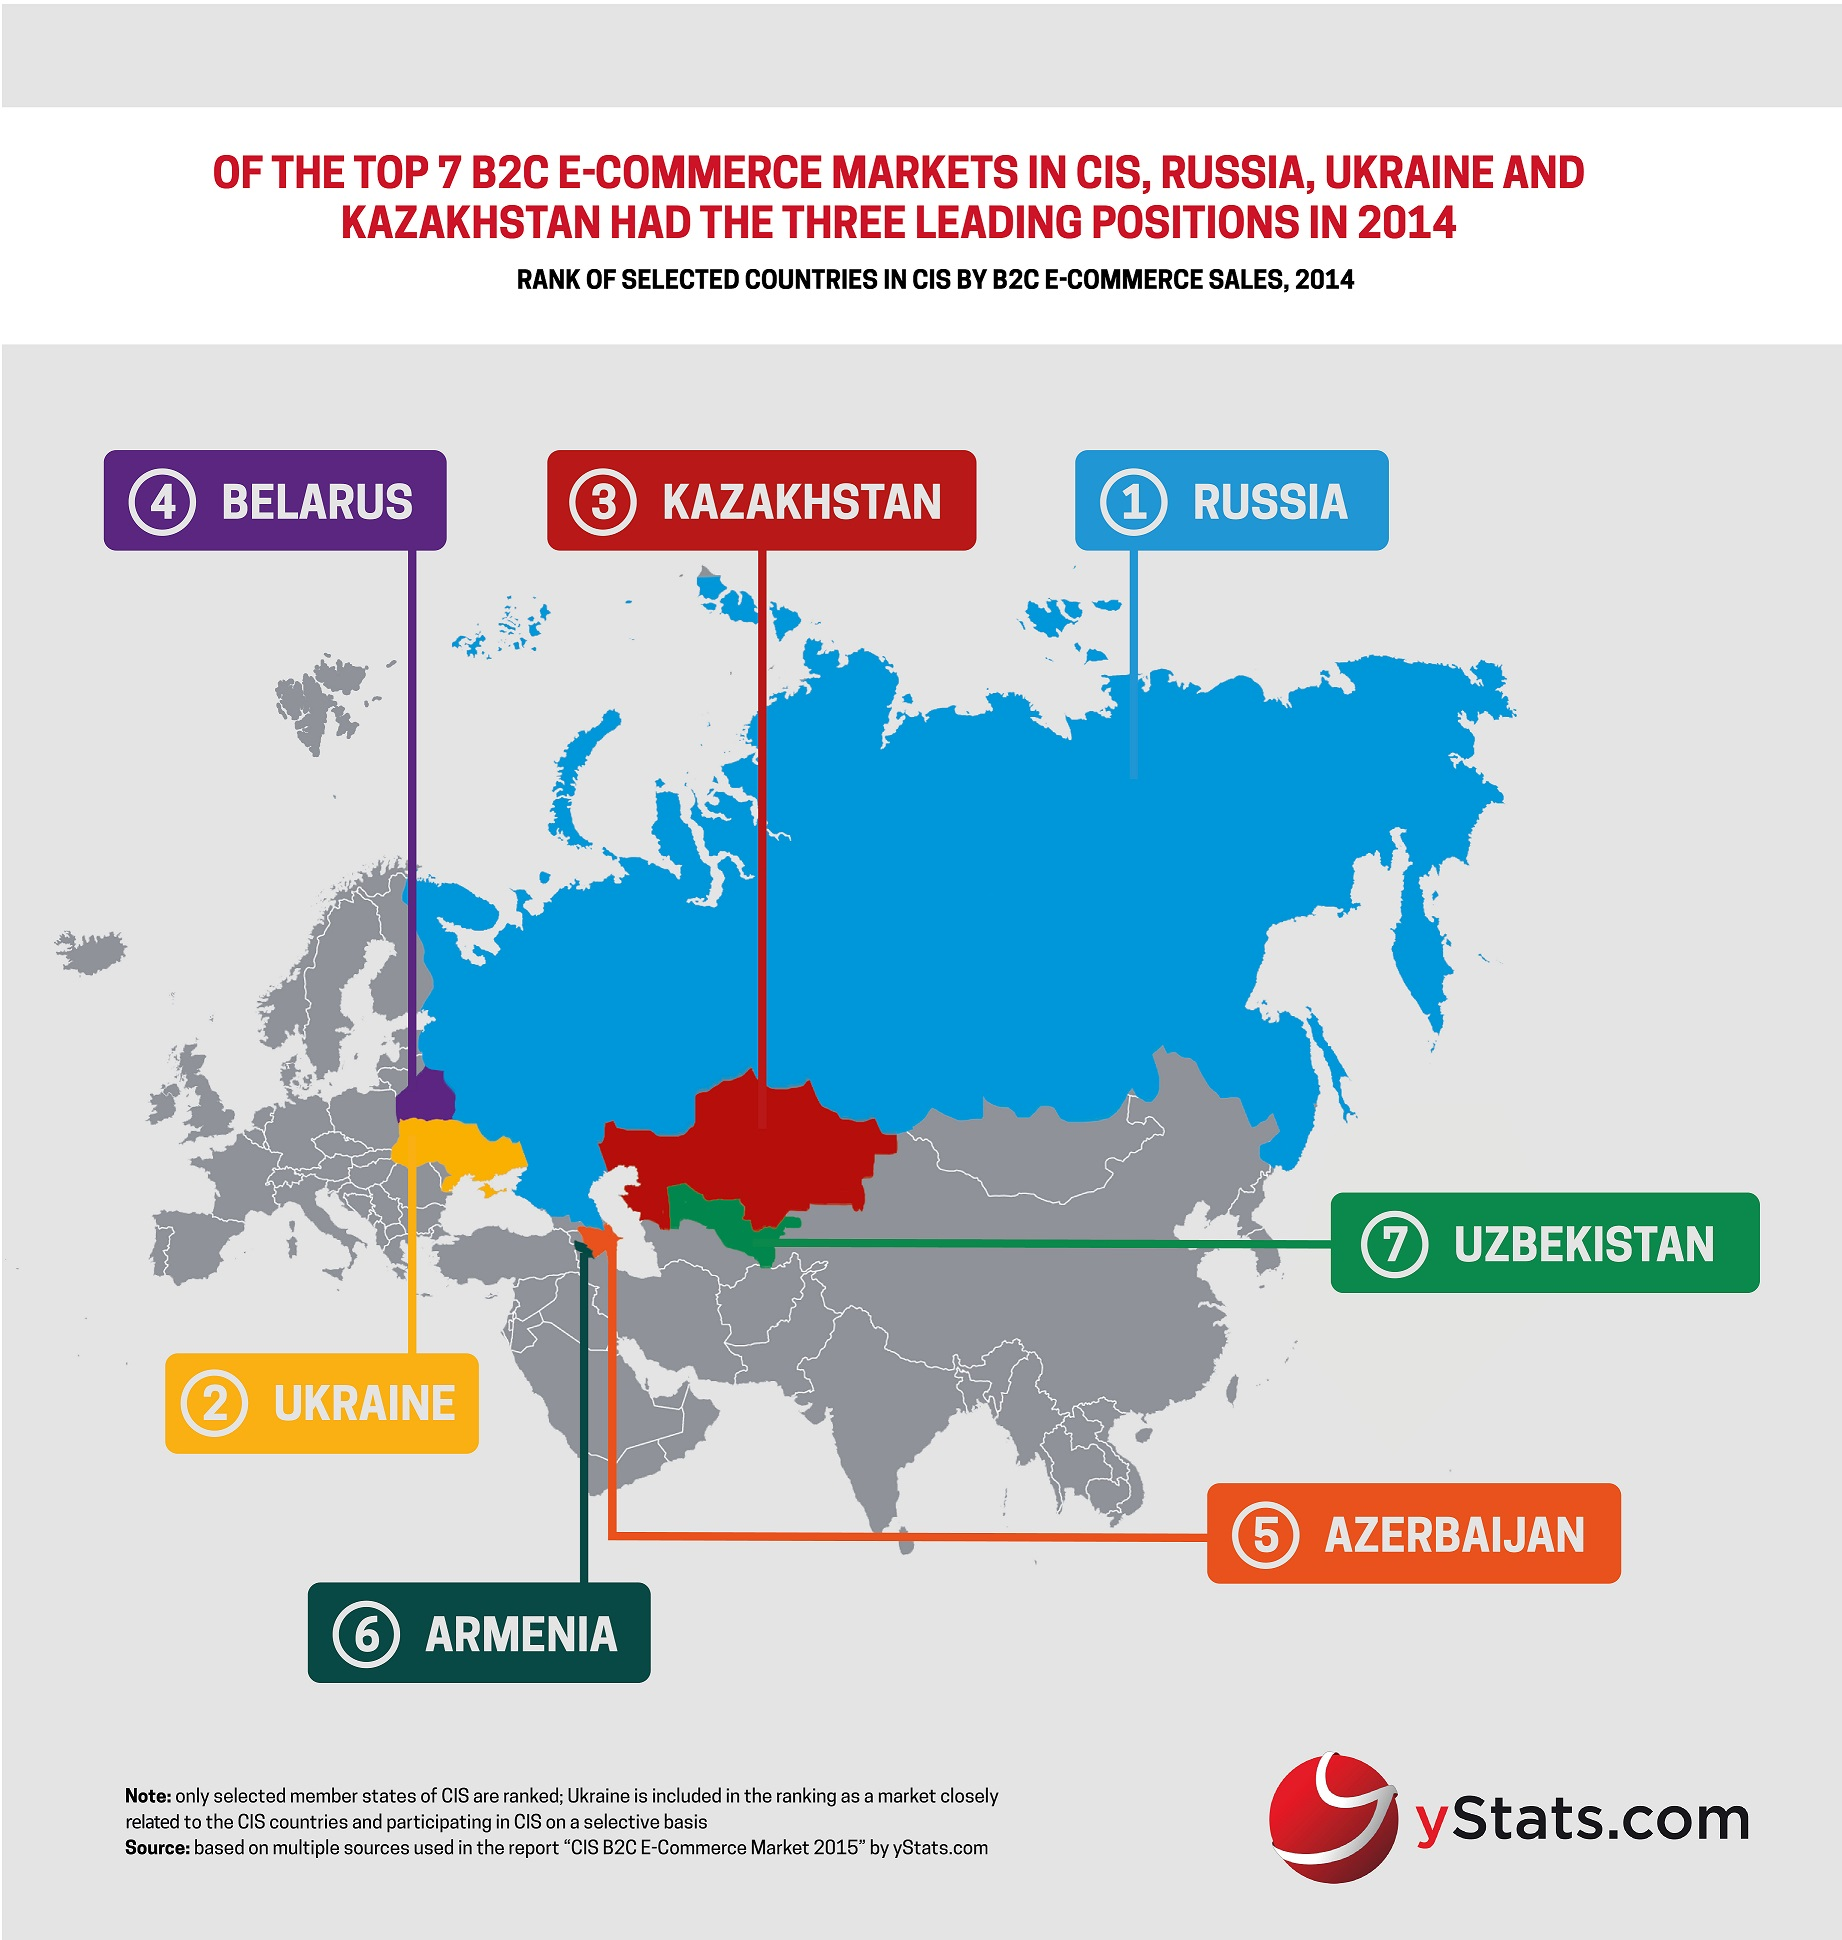 rank of cis countries by b2c ecommerce sales